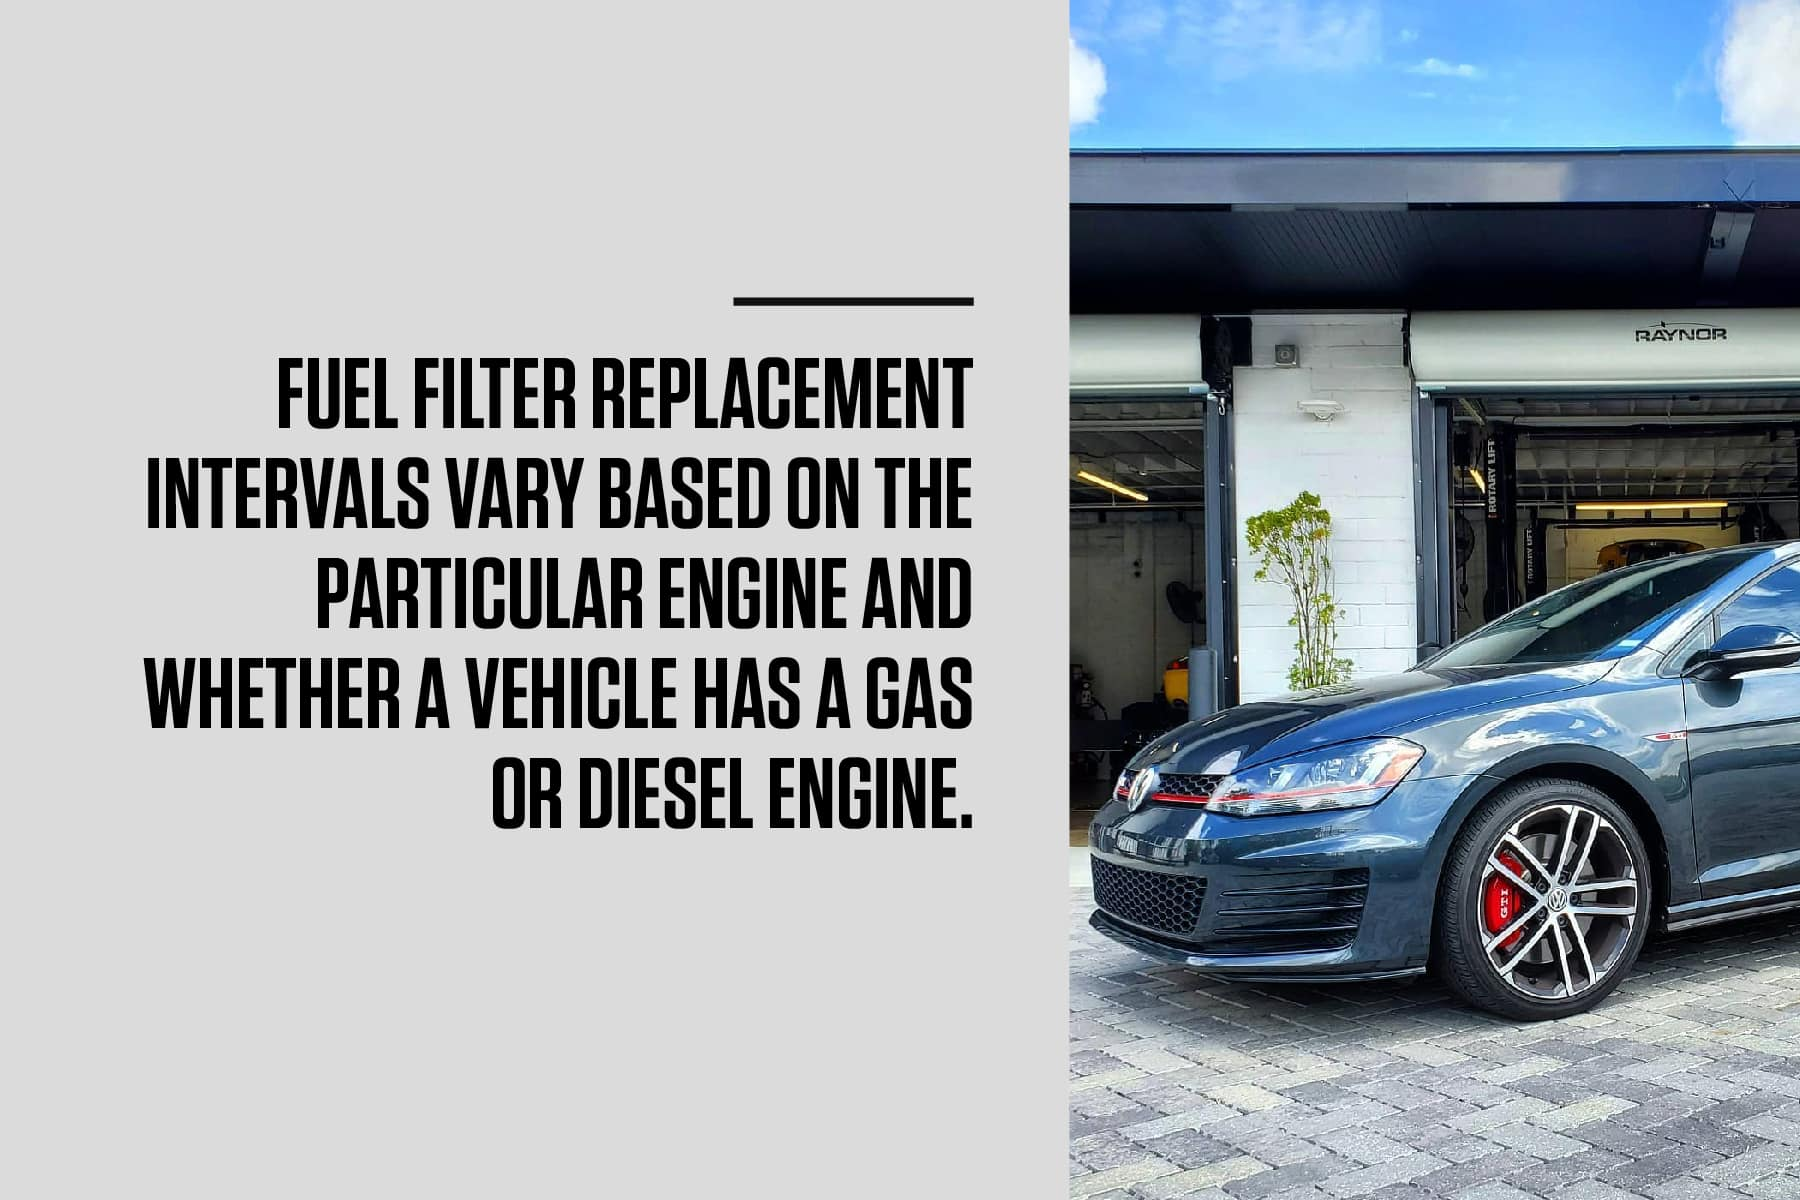 vw fuel filter replacement intervals vary on the engine